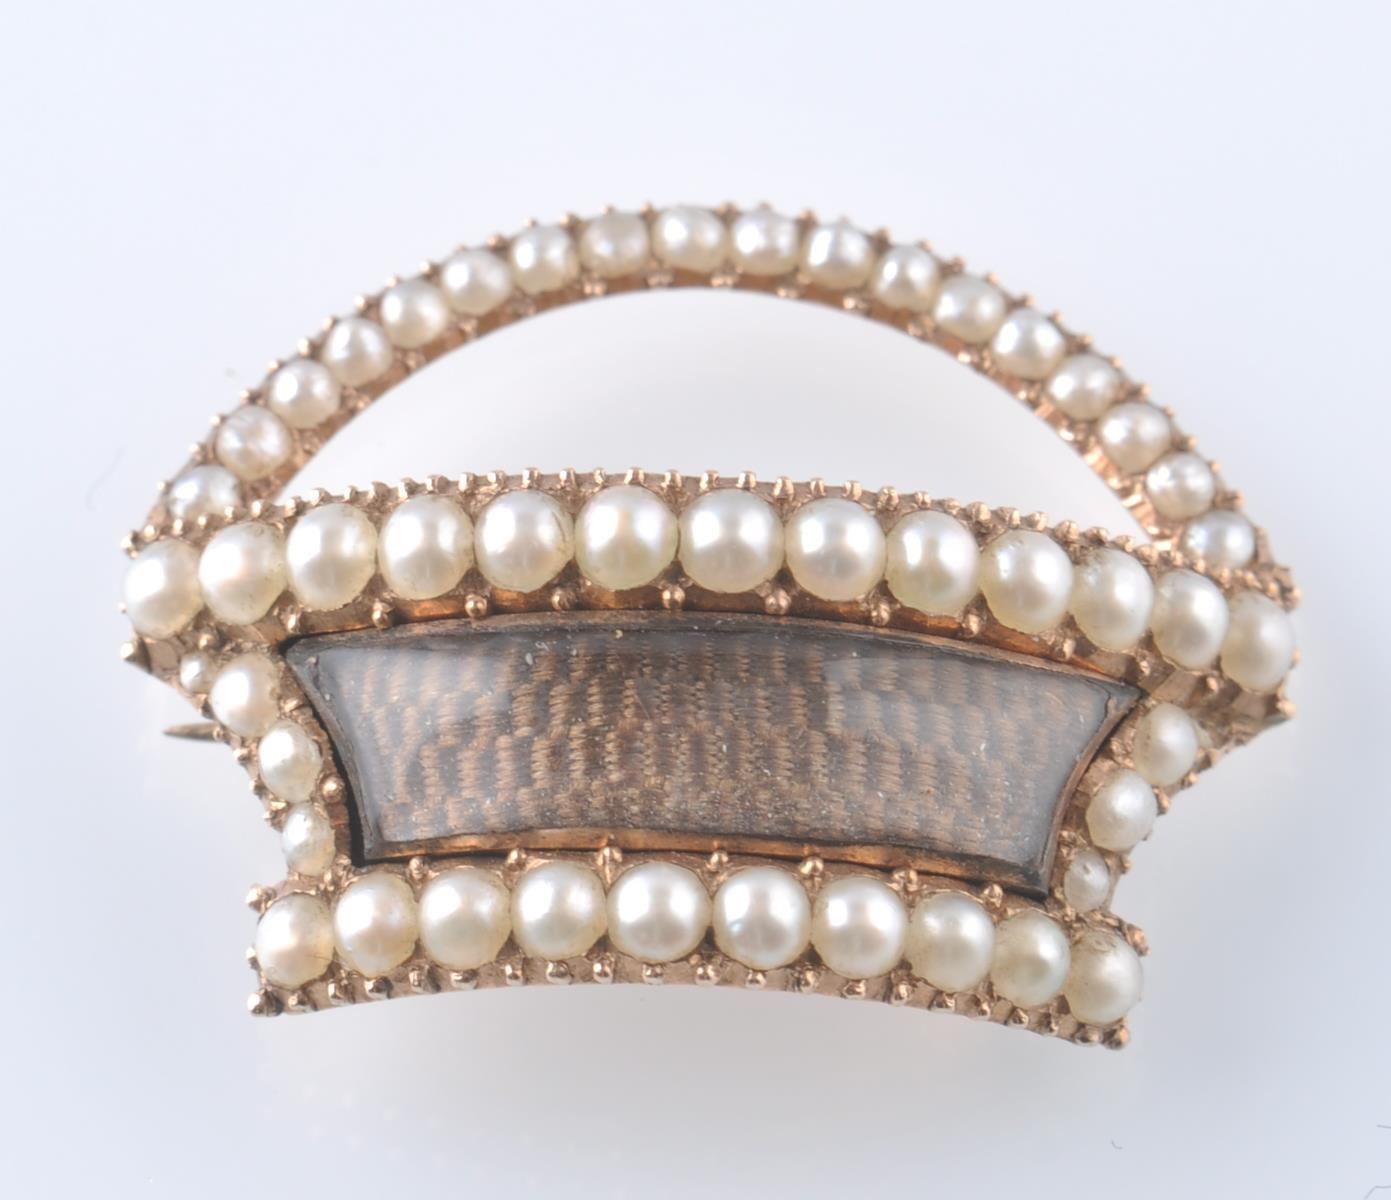 Lot 126 - 19TH CENTURY GEORGIAN GOLD AND SEED PEARL RELIQUAR